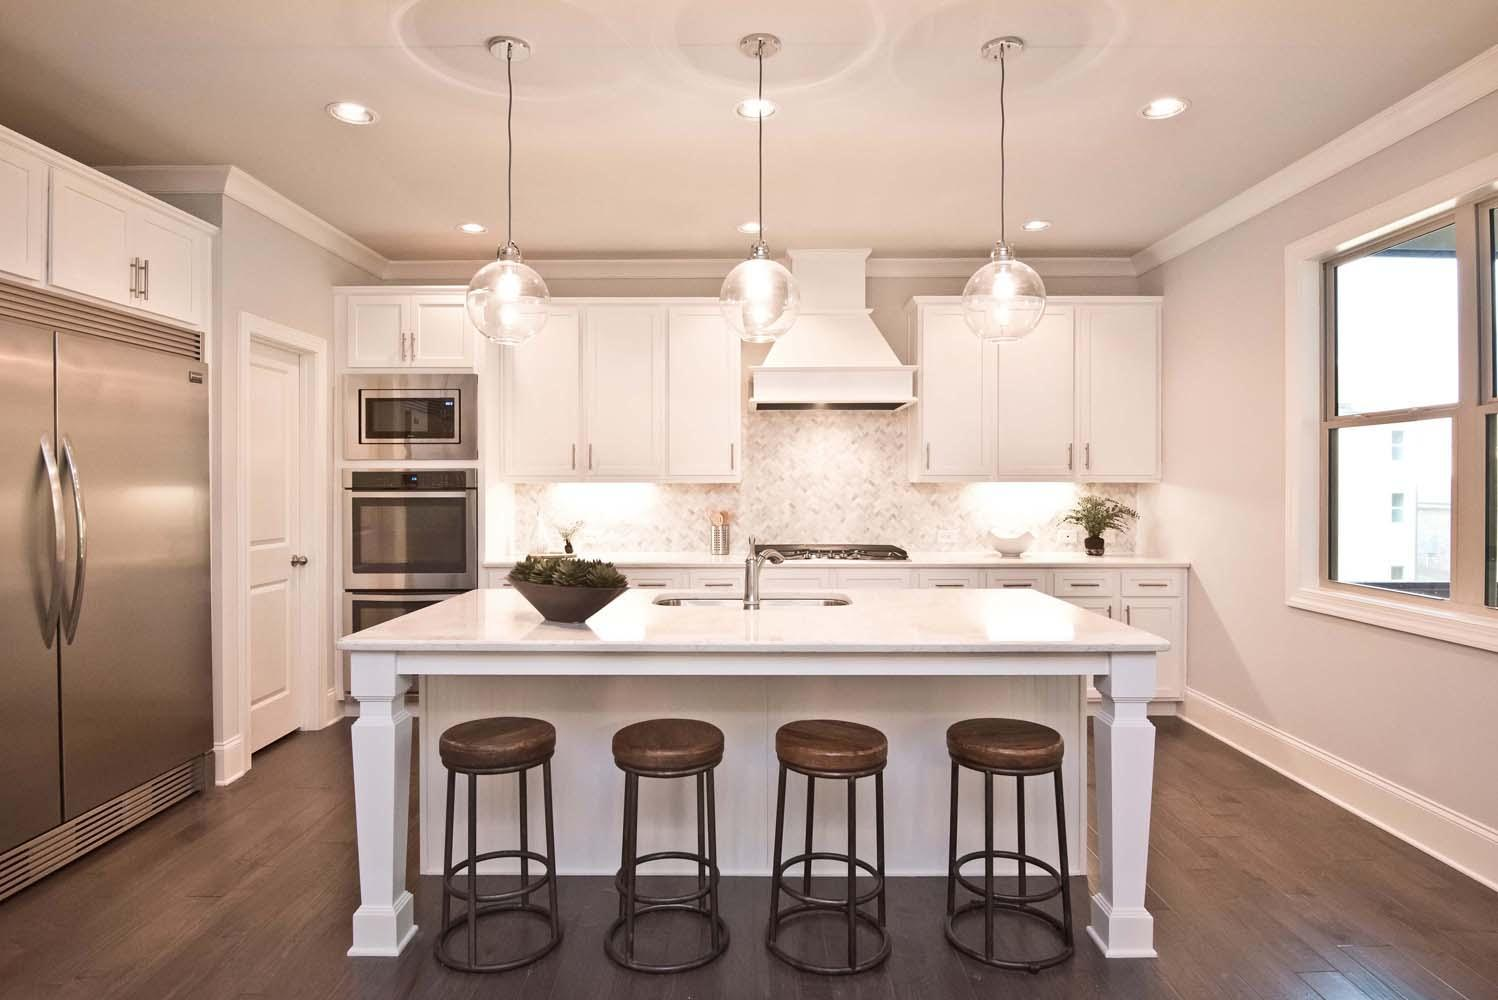 Kitchen featured in the Barkley By Chafin Communities in Atlanta, GA